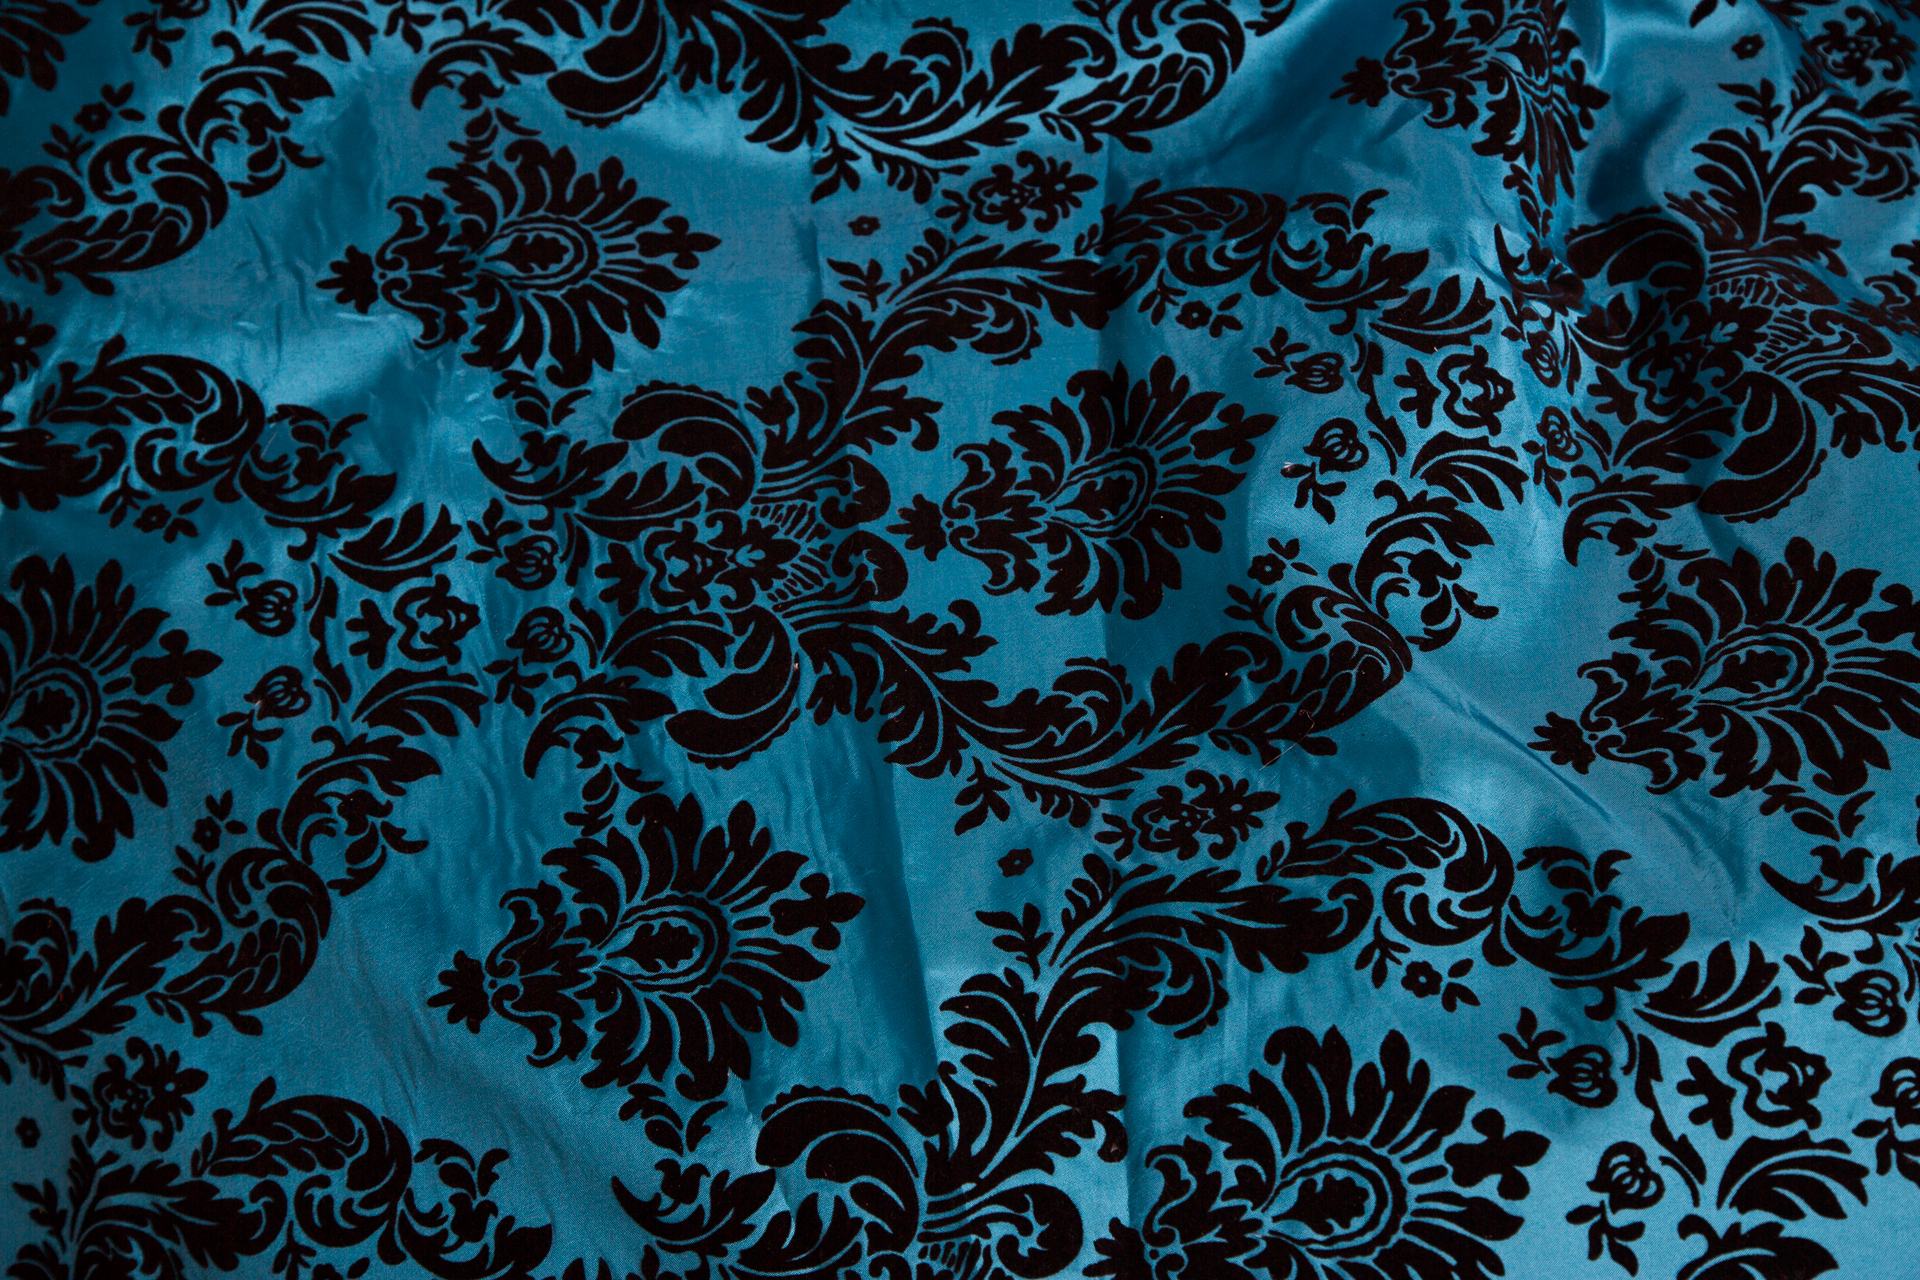 4ft-blue-black-damask